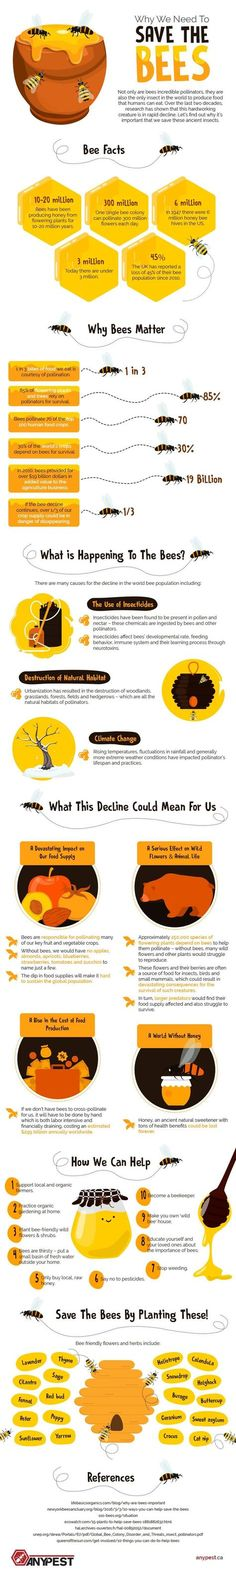 Why We Need To Save The Bees #Infographic #Environment #Bees